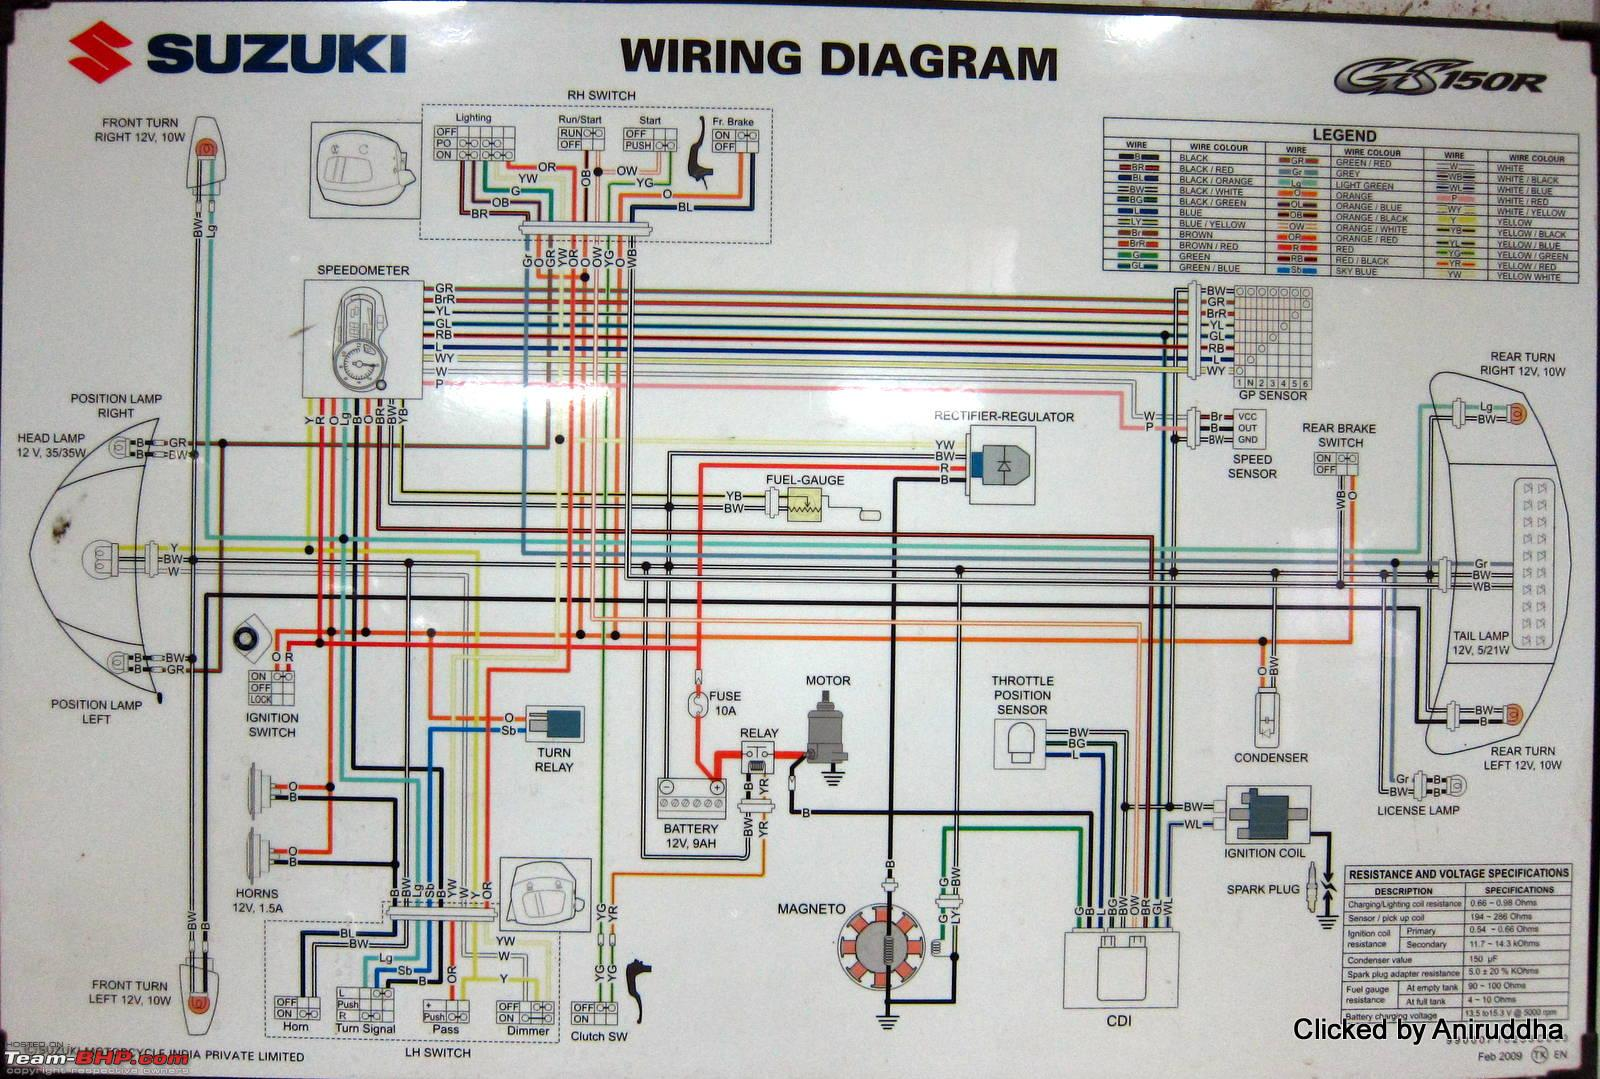 887402d1329132985 circuit diagrams indian motorcycles scooters img_0717 circuit diagrams of indian motorcycles and scooters team bhp suzuki samurai wiring diagrams asfachs at nearapp.co